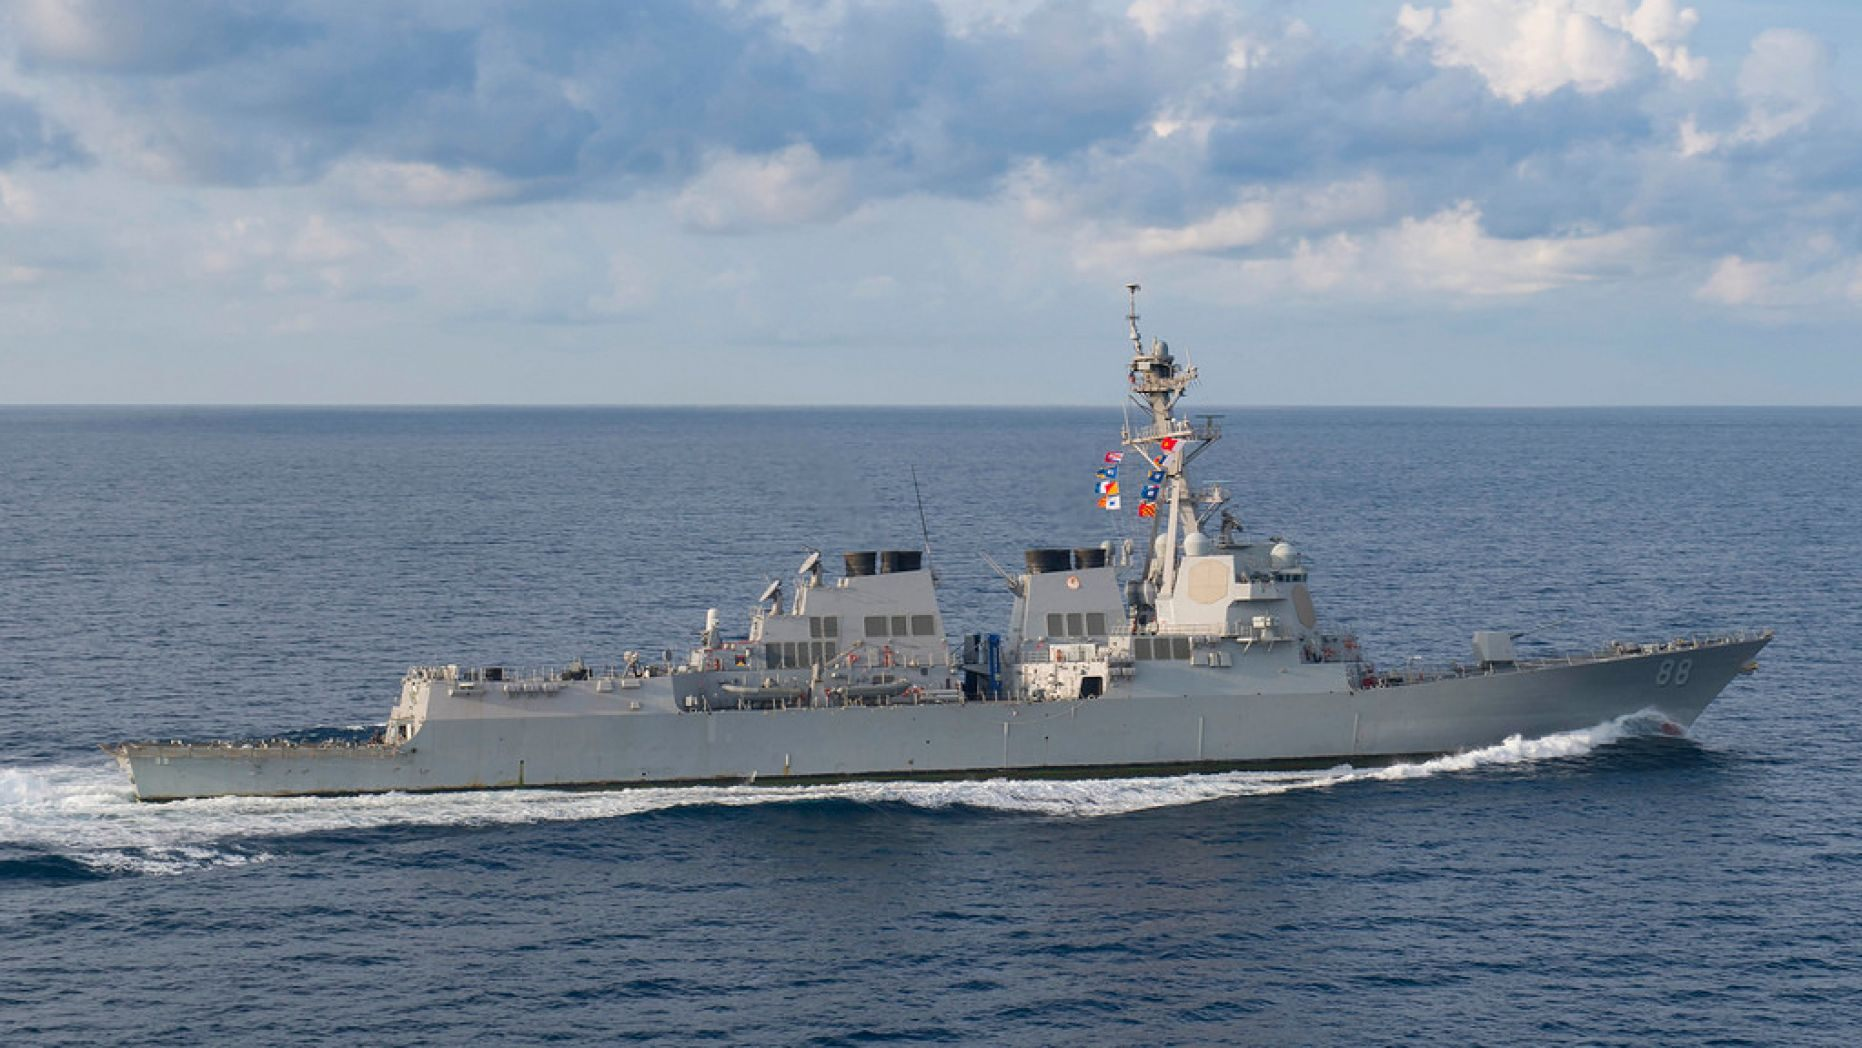 The guided-missile destroyer USS Preble (DDG 88) transits the Indian Ocean.